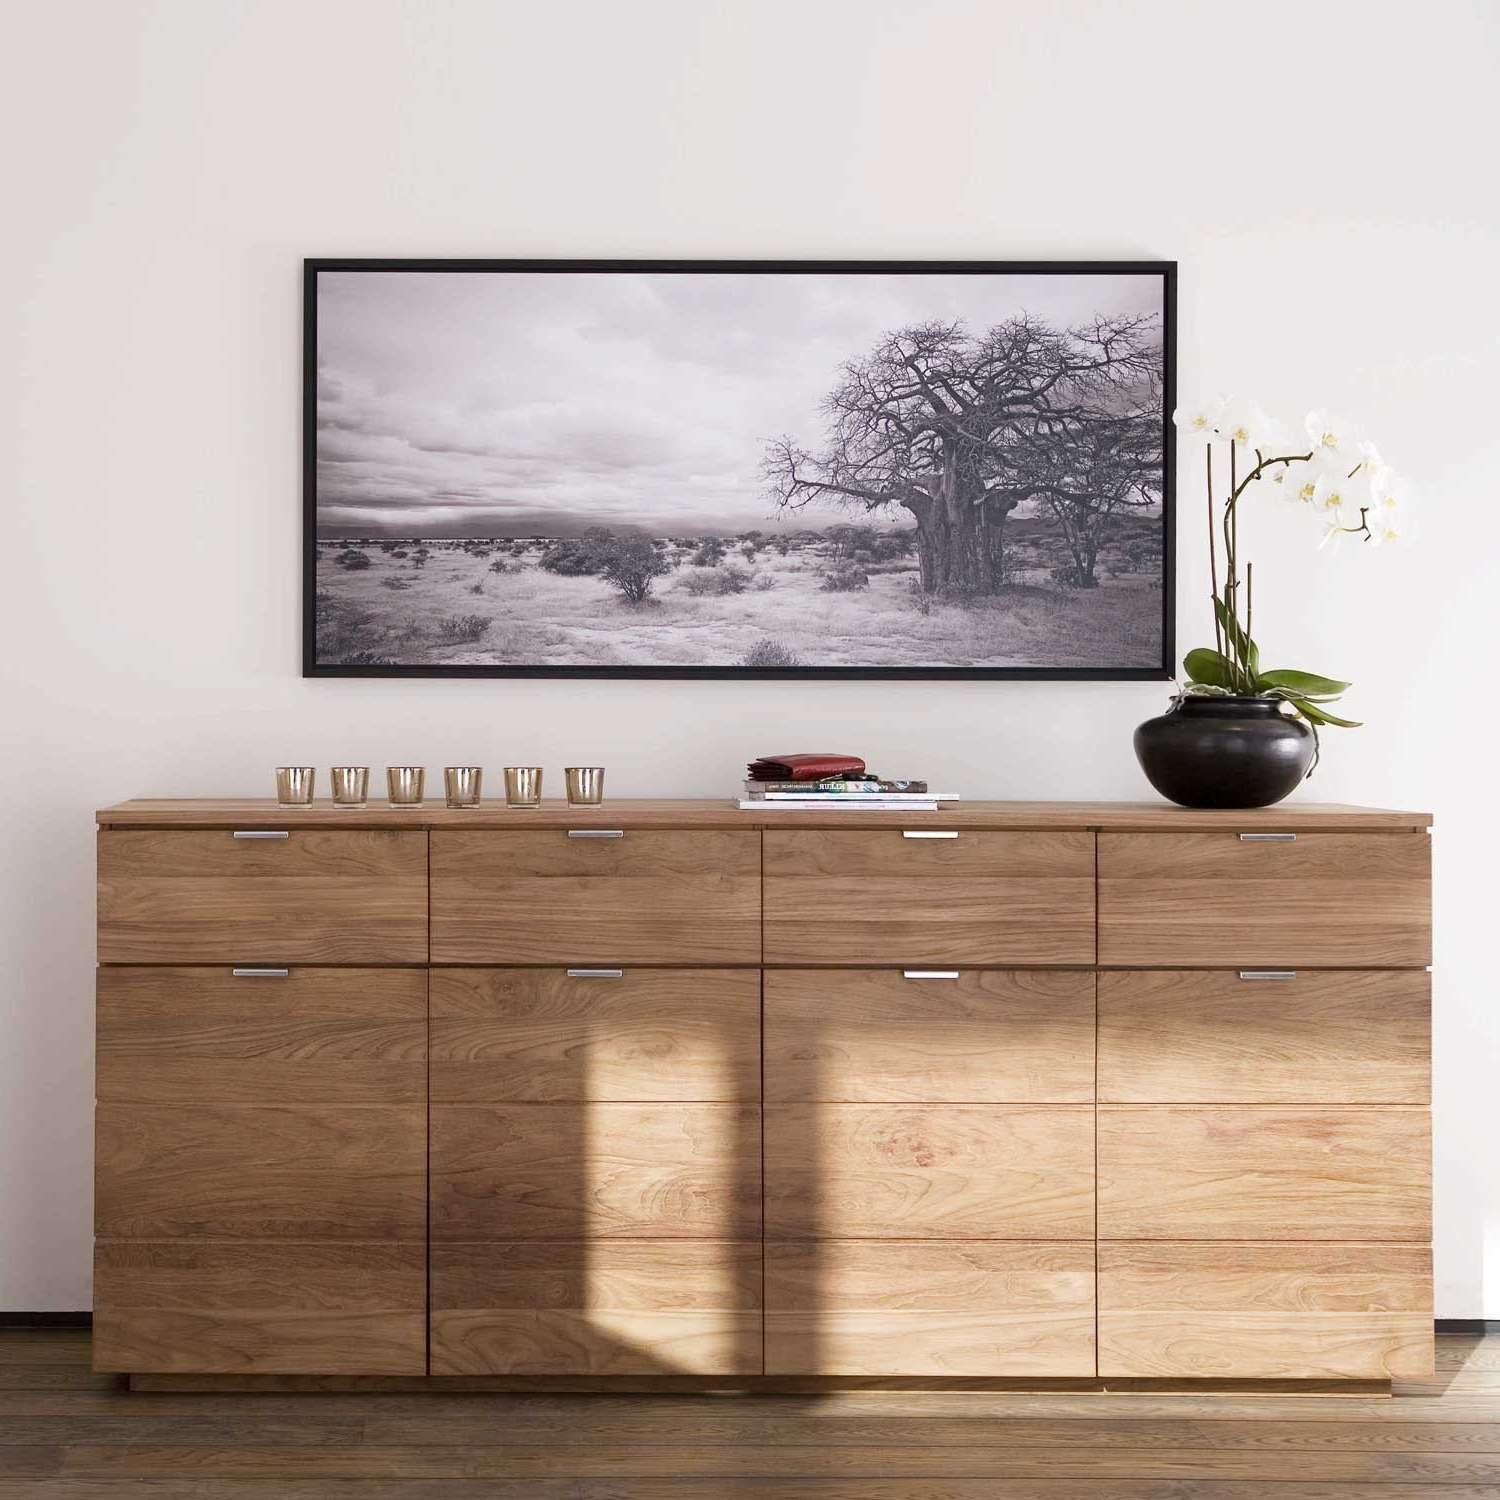 Ethnicraft Groove Teak Sideboards | Solid Wood Furniture Pertaining To Teak Sideboards (View 7 of 20)